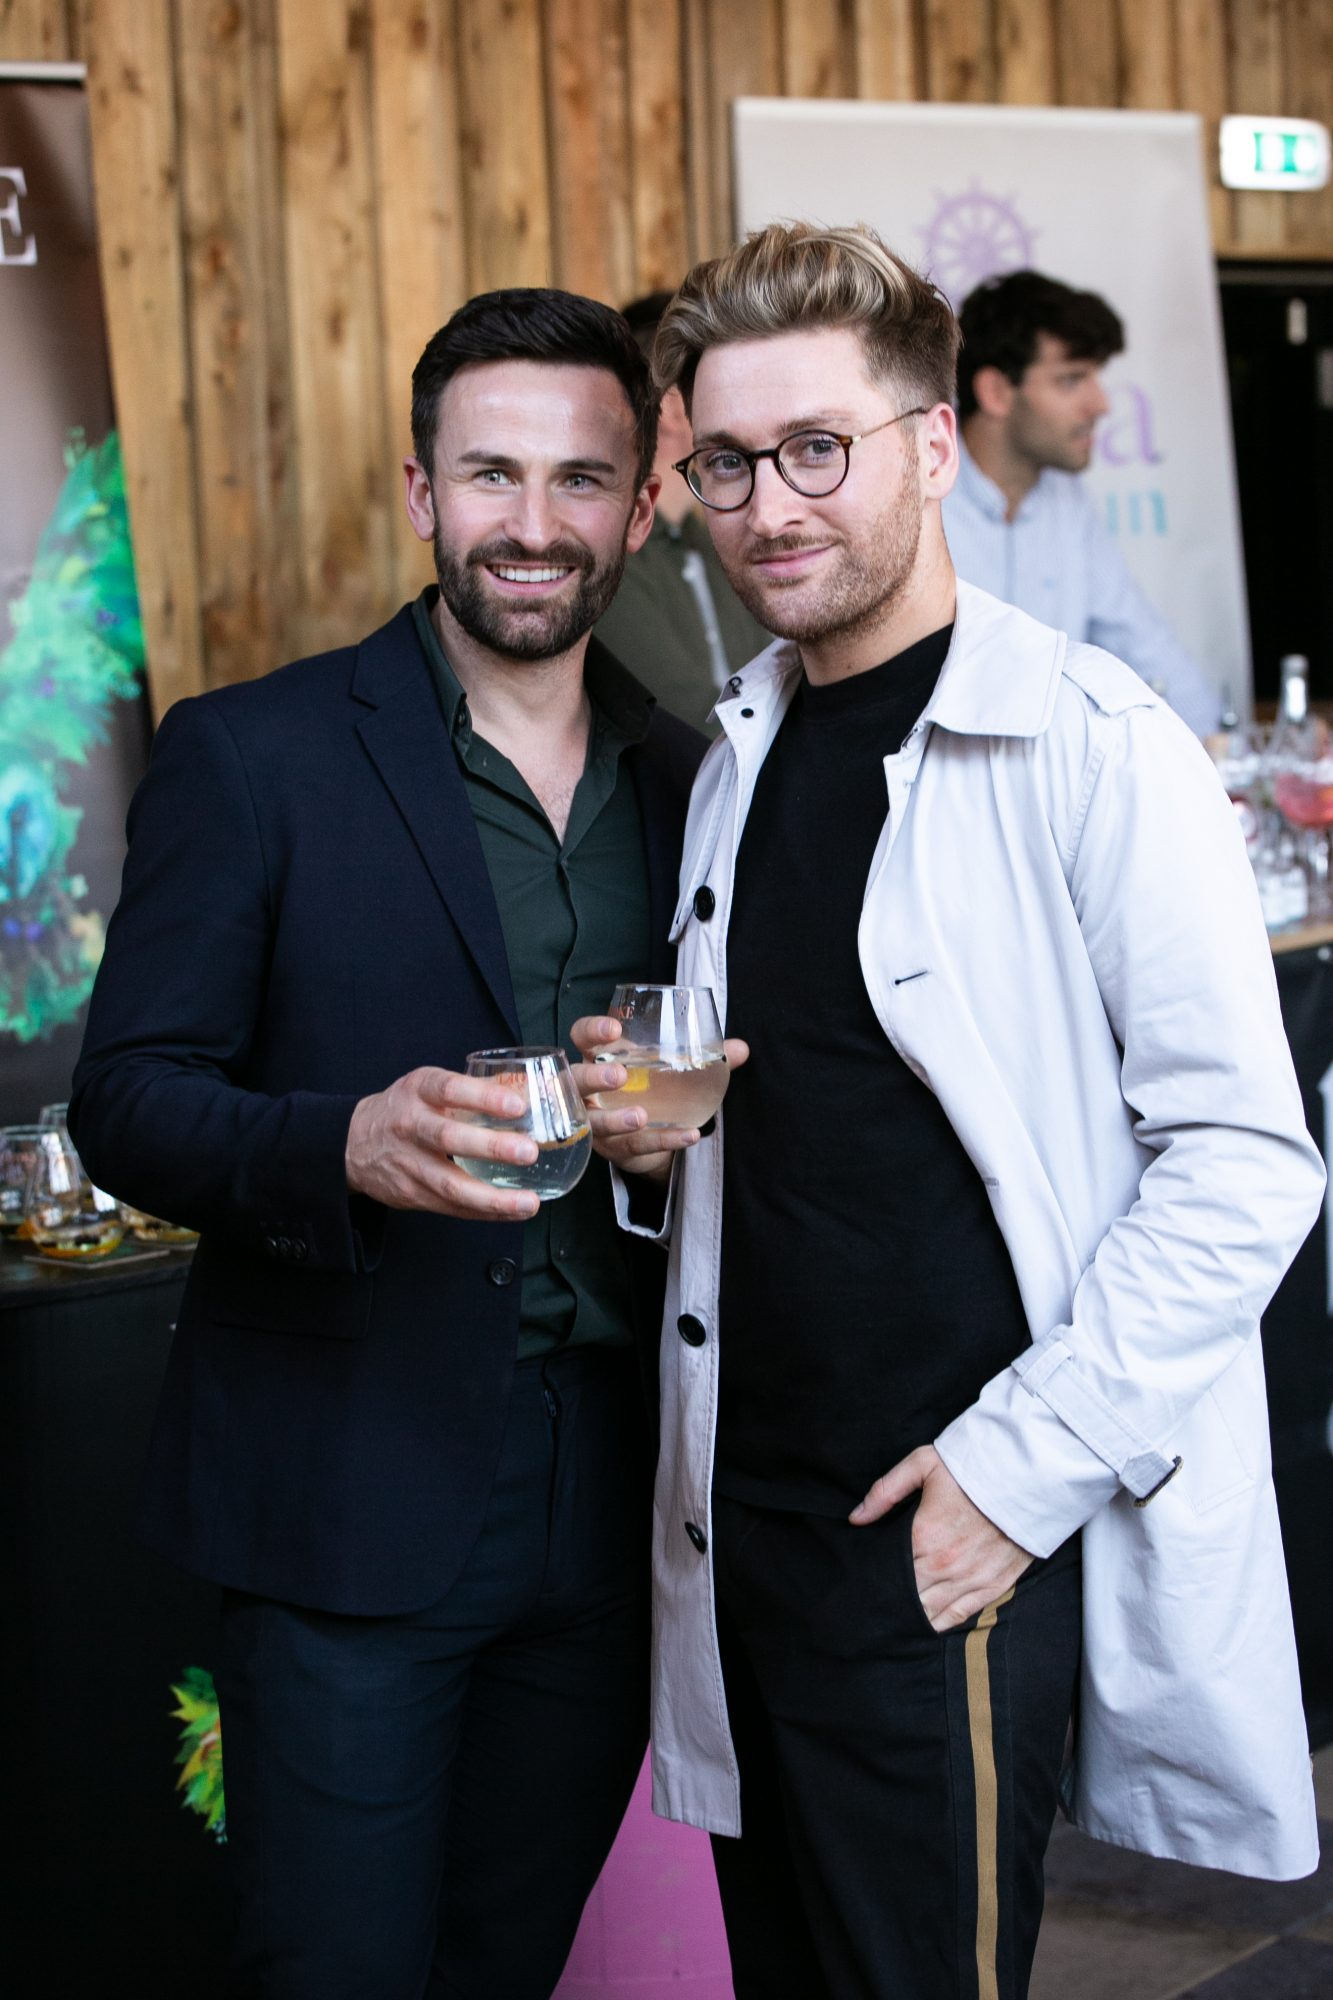 Shane Cassidy and Rob Kenny at the SuperValu Gin Garden held at Opium Rooftop Garden, Dublin.